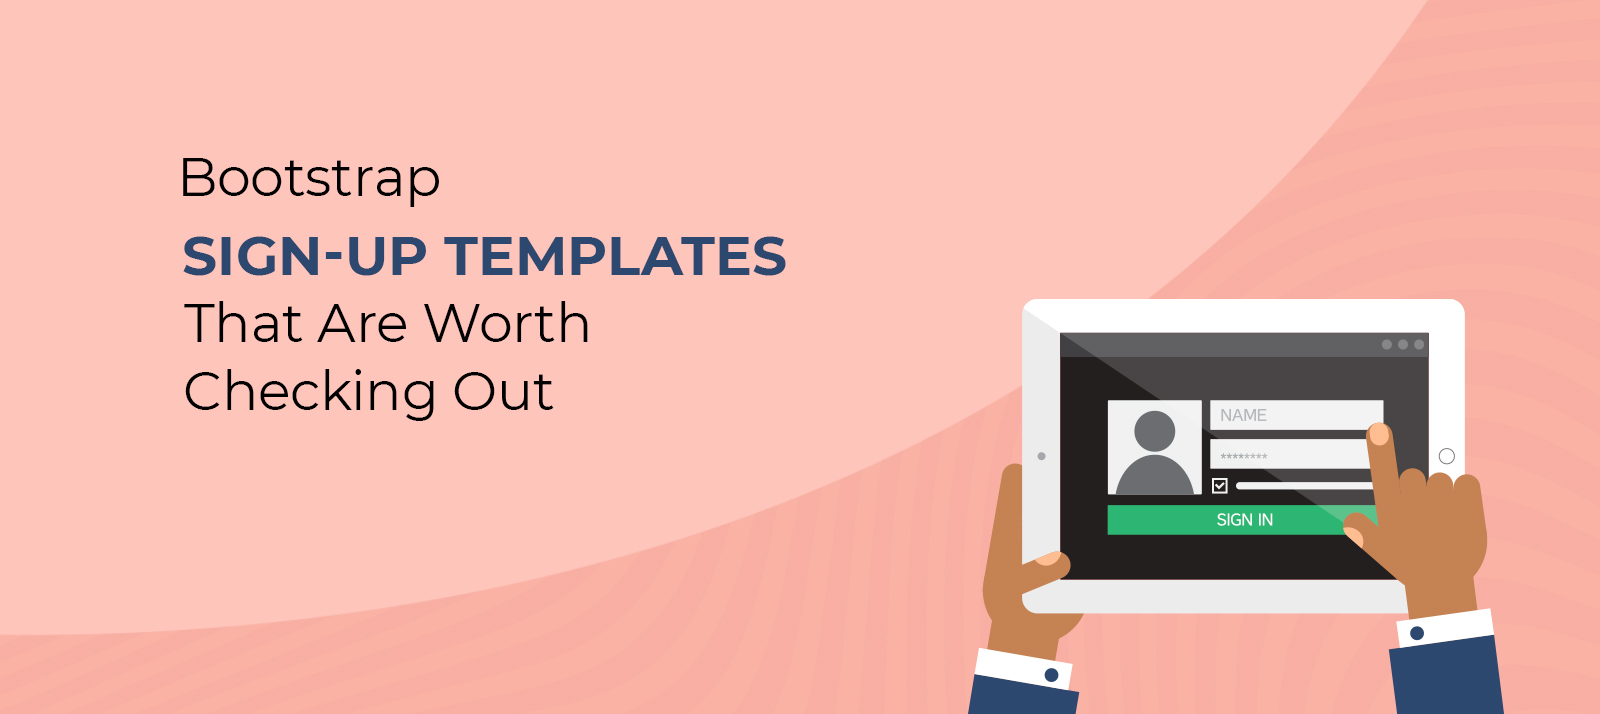 10 Bootstrap SignUp Templates That Are Worth Checking Out